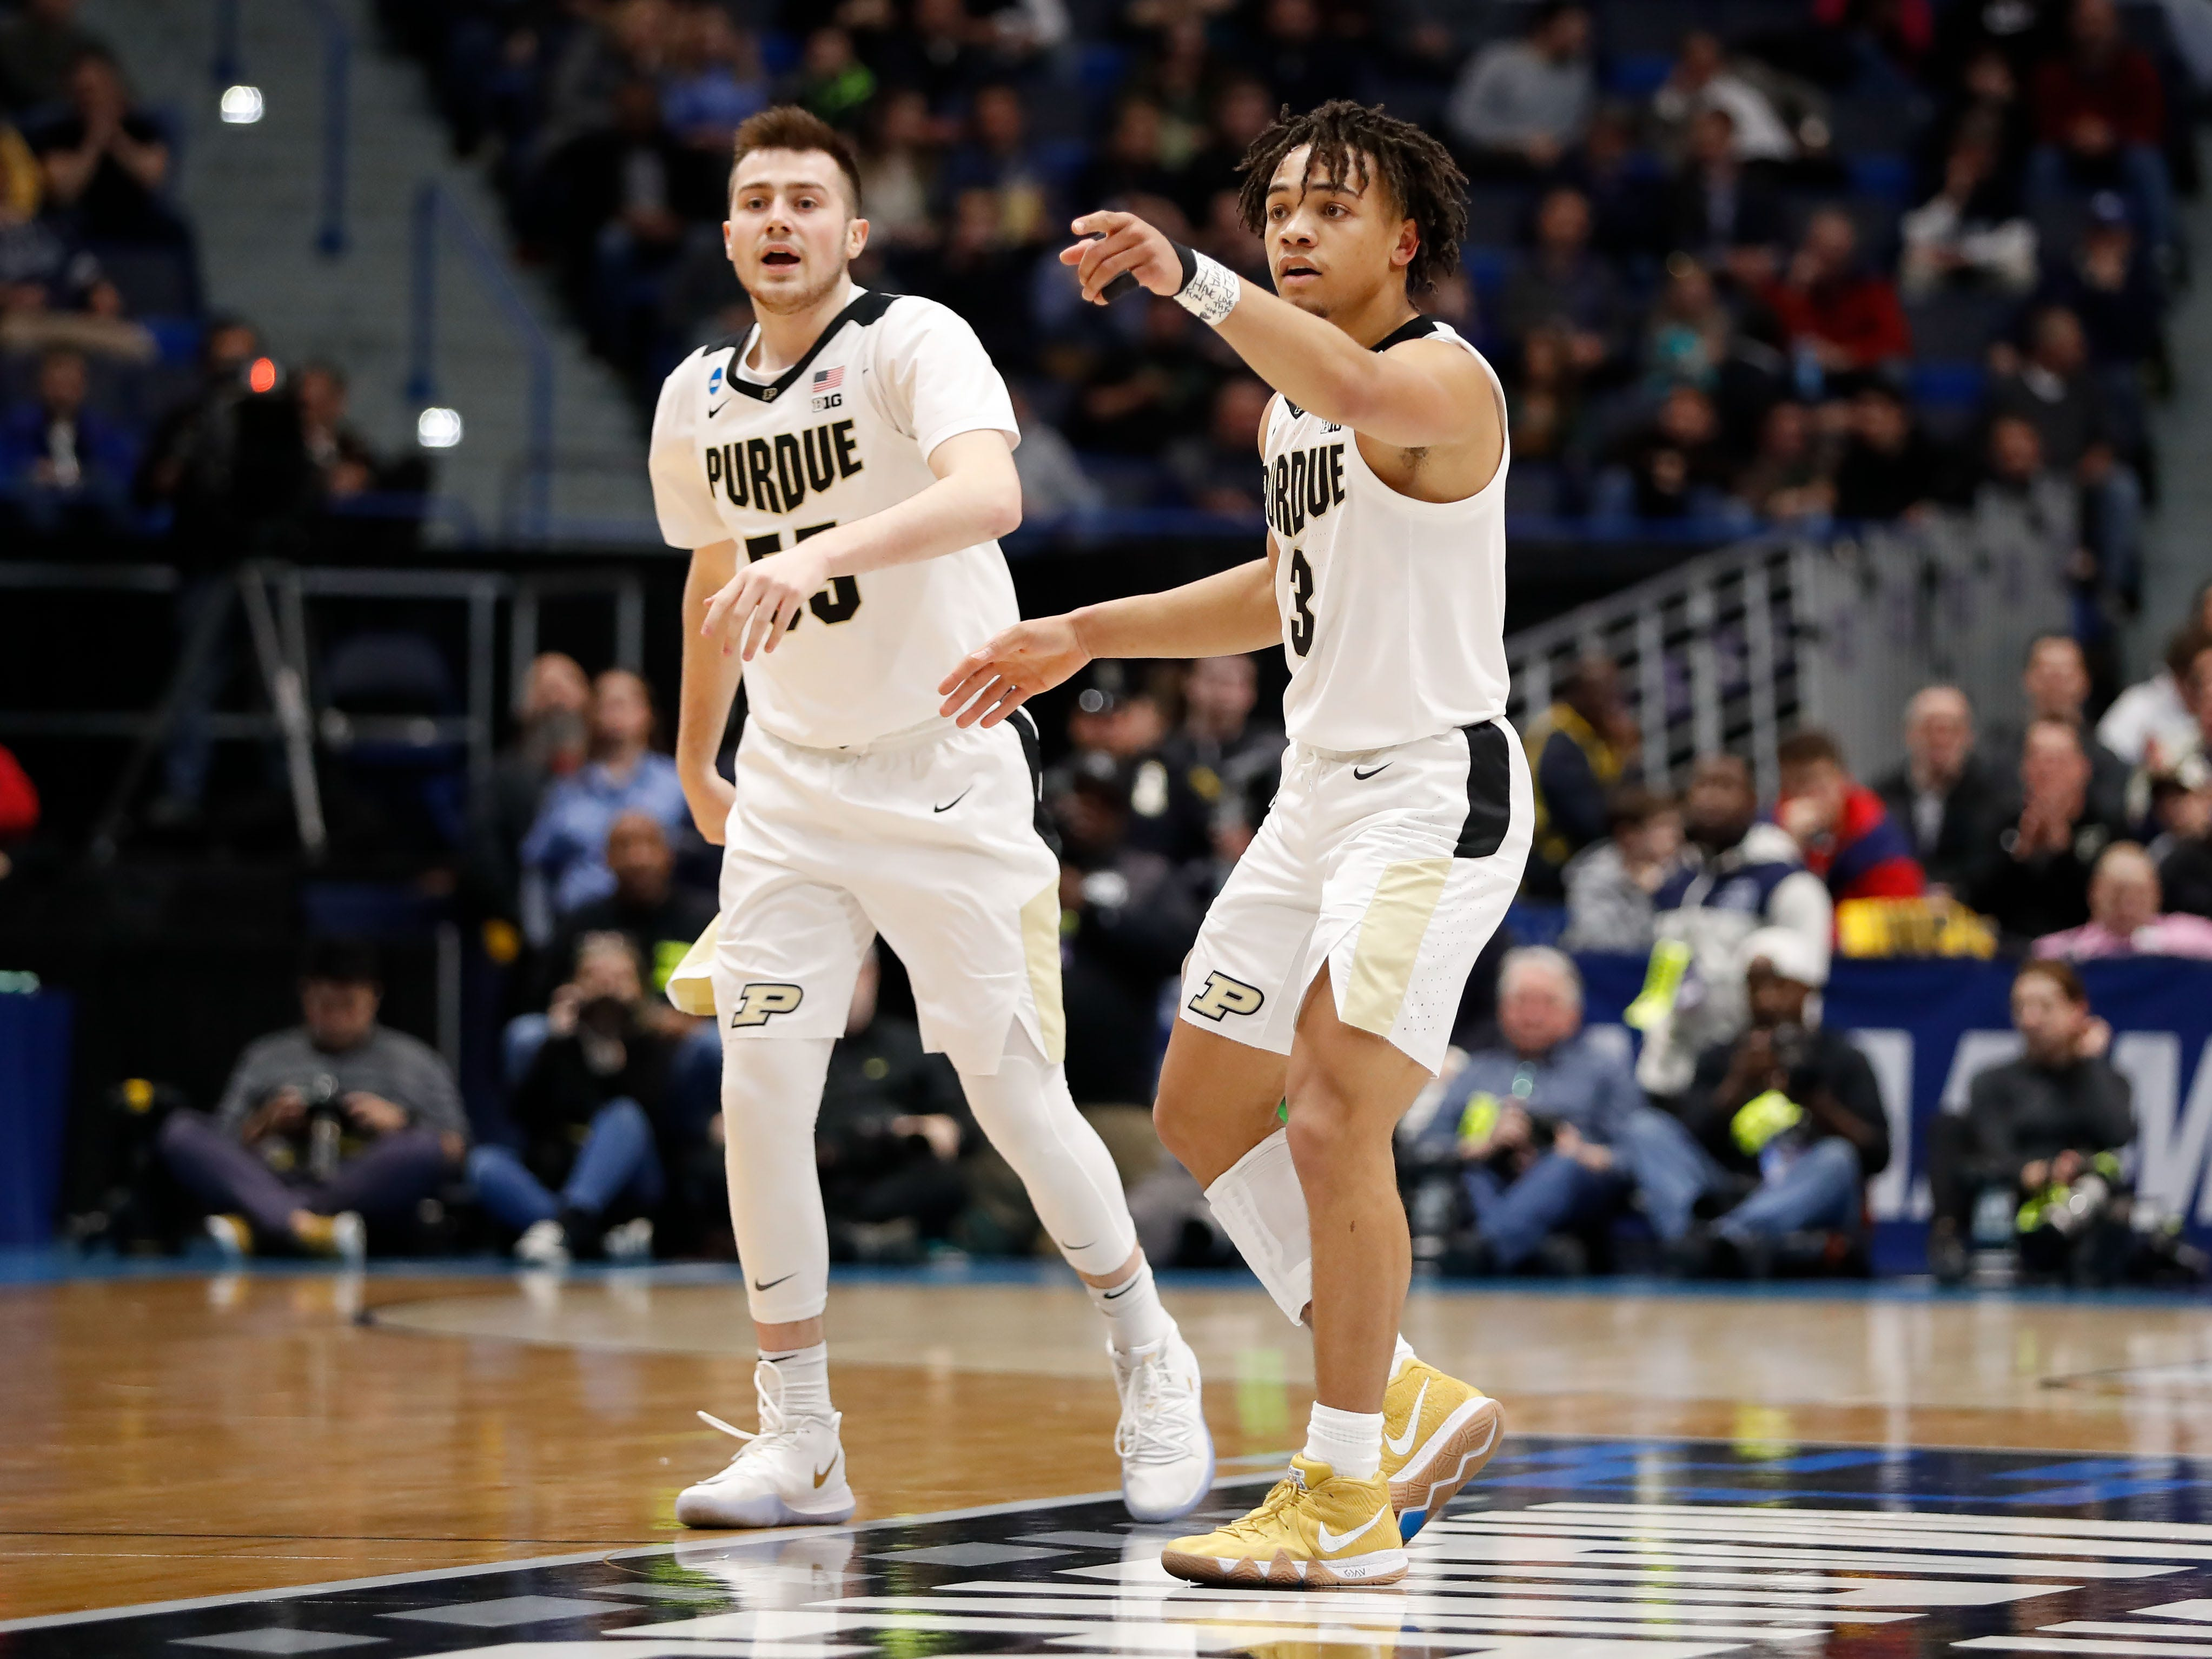 Purdue Boilermakers guard Carsen Edwards (3) talks over a play with guard Sasha Stefanovic (55) against the Old Dominion Monarchs during the first half of a game in the first round of the 2019 NCAA Tournament at XL Center.